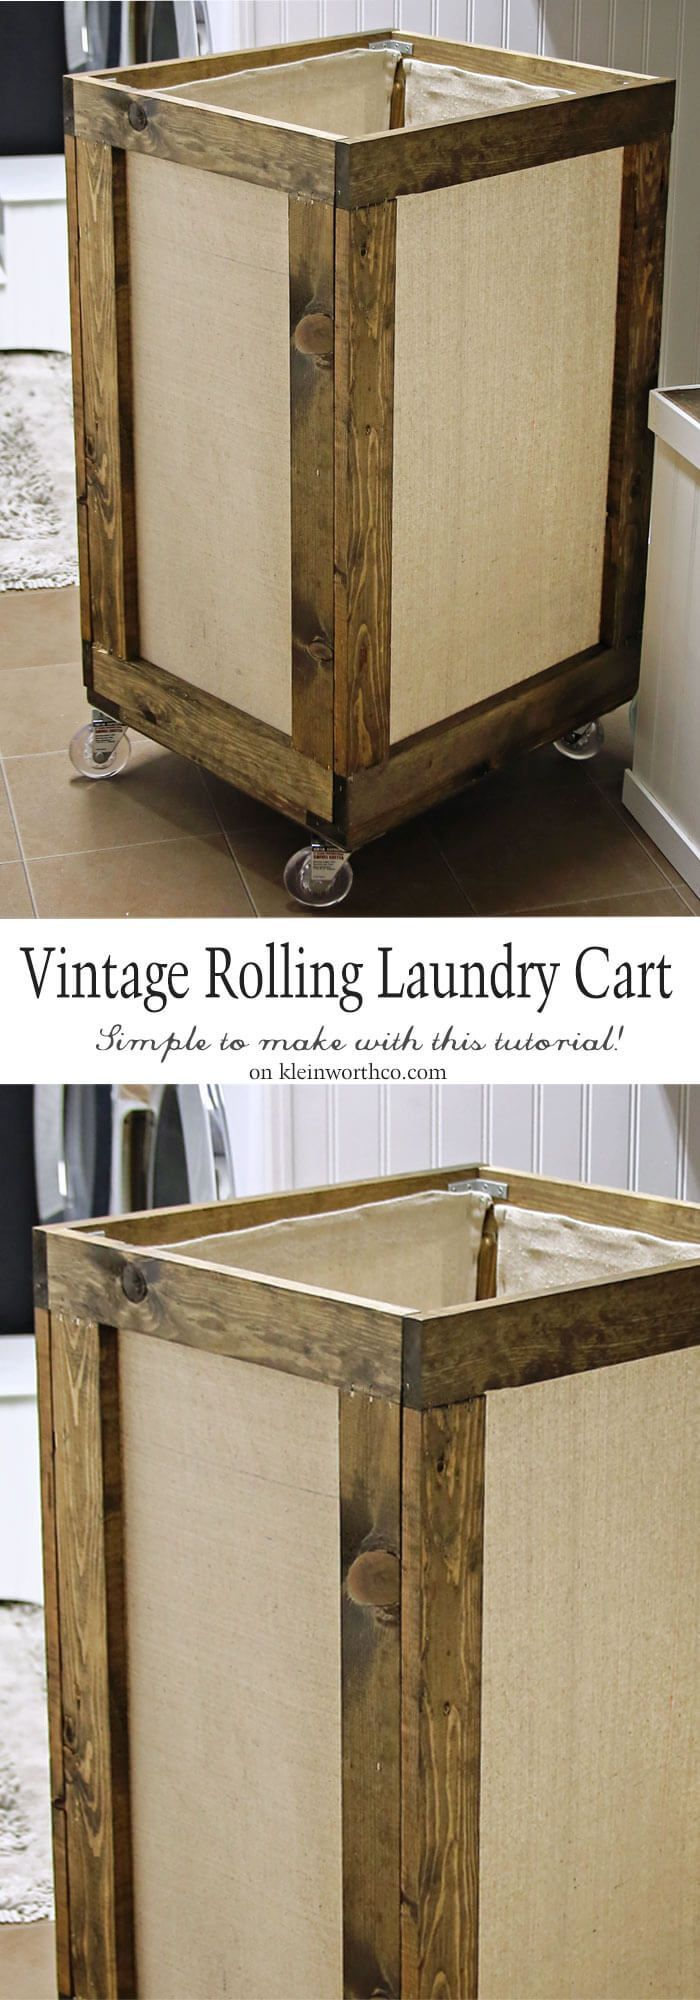 DIY Wood Working Projects: Vintage Rolling Laundry Cart